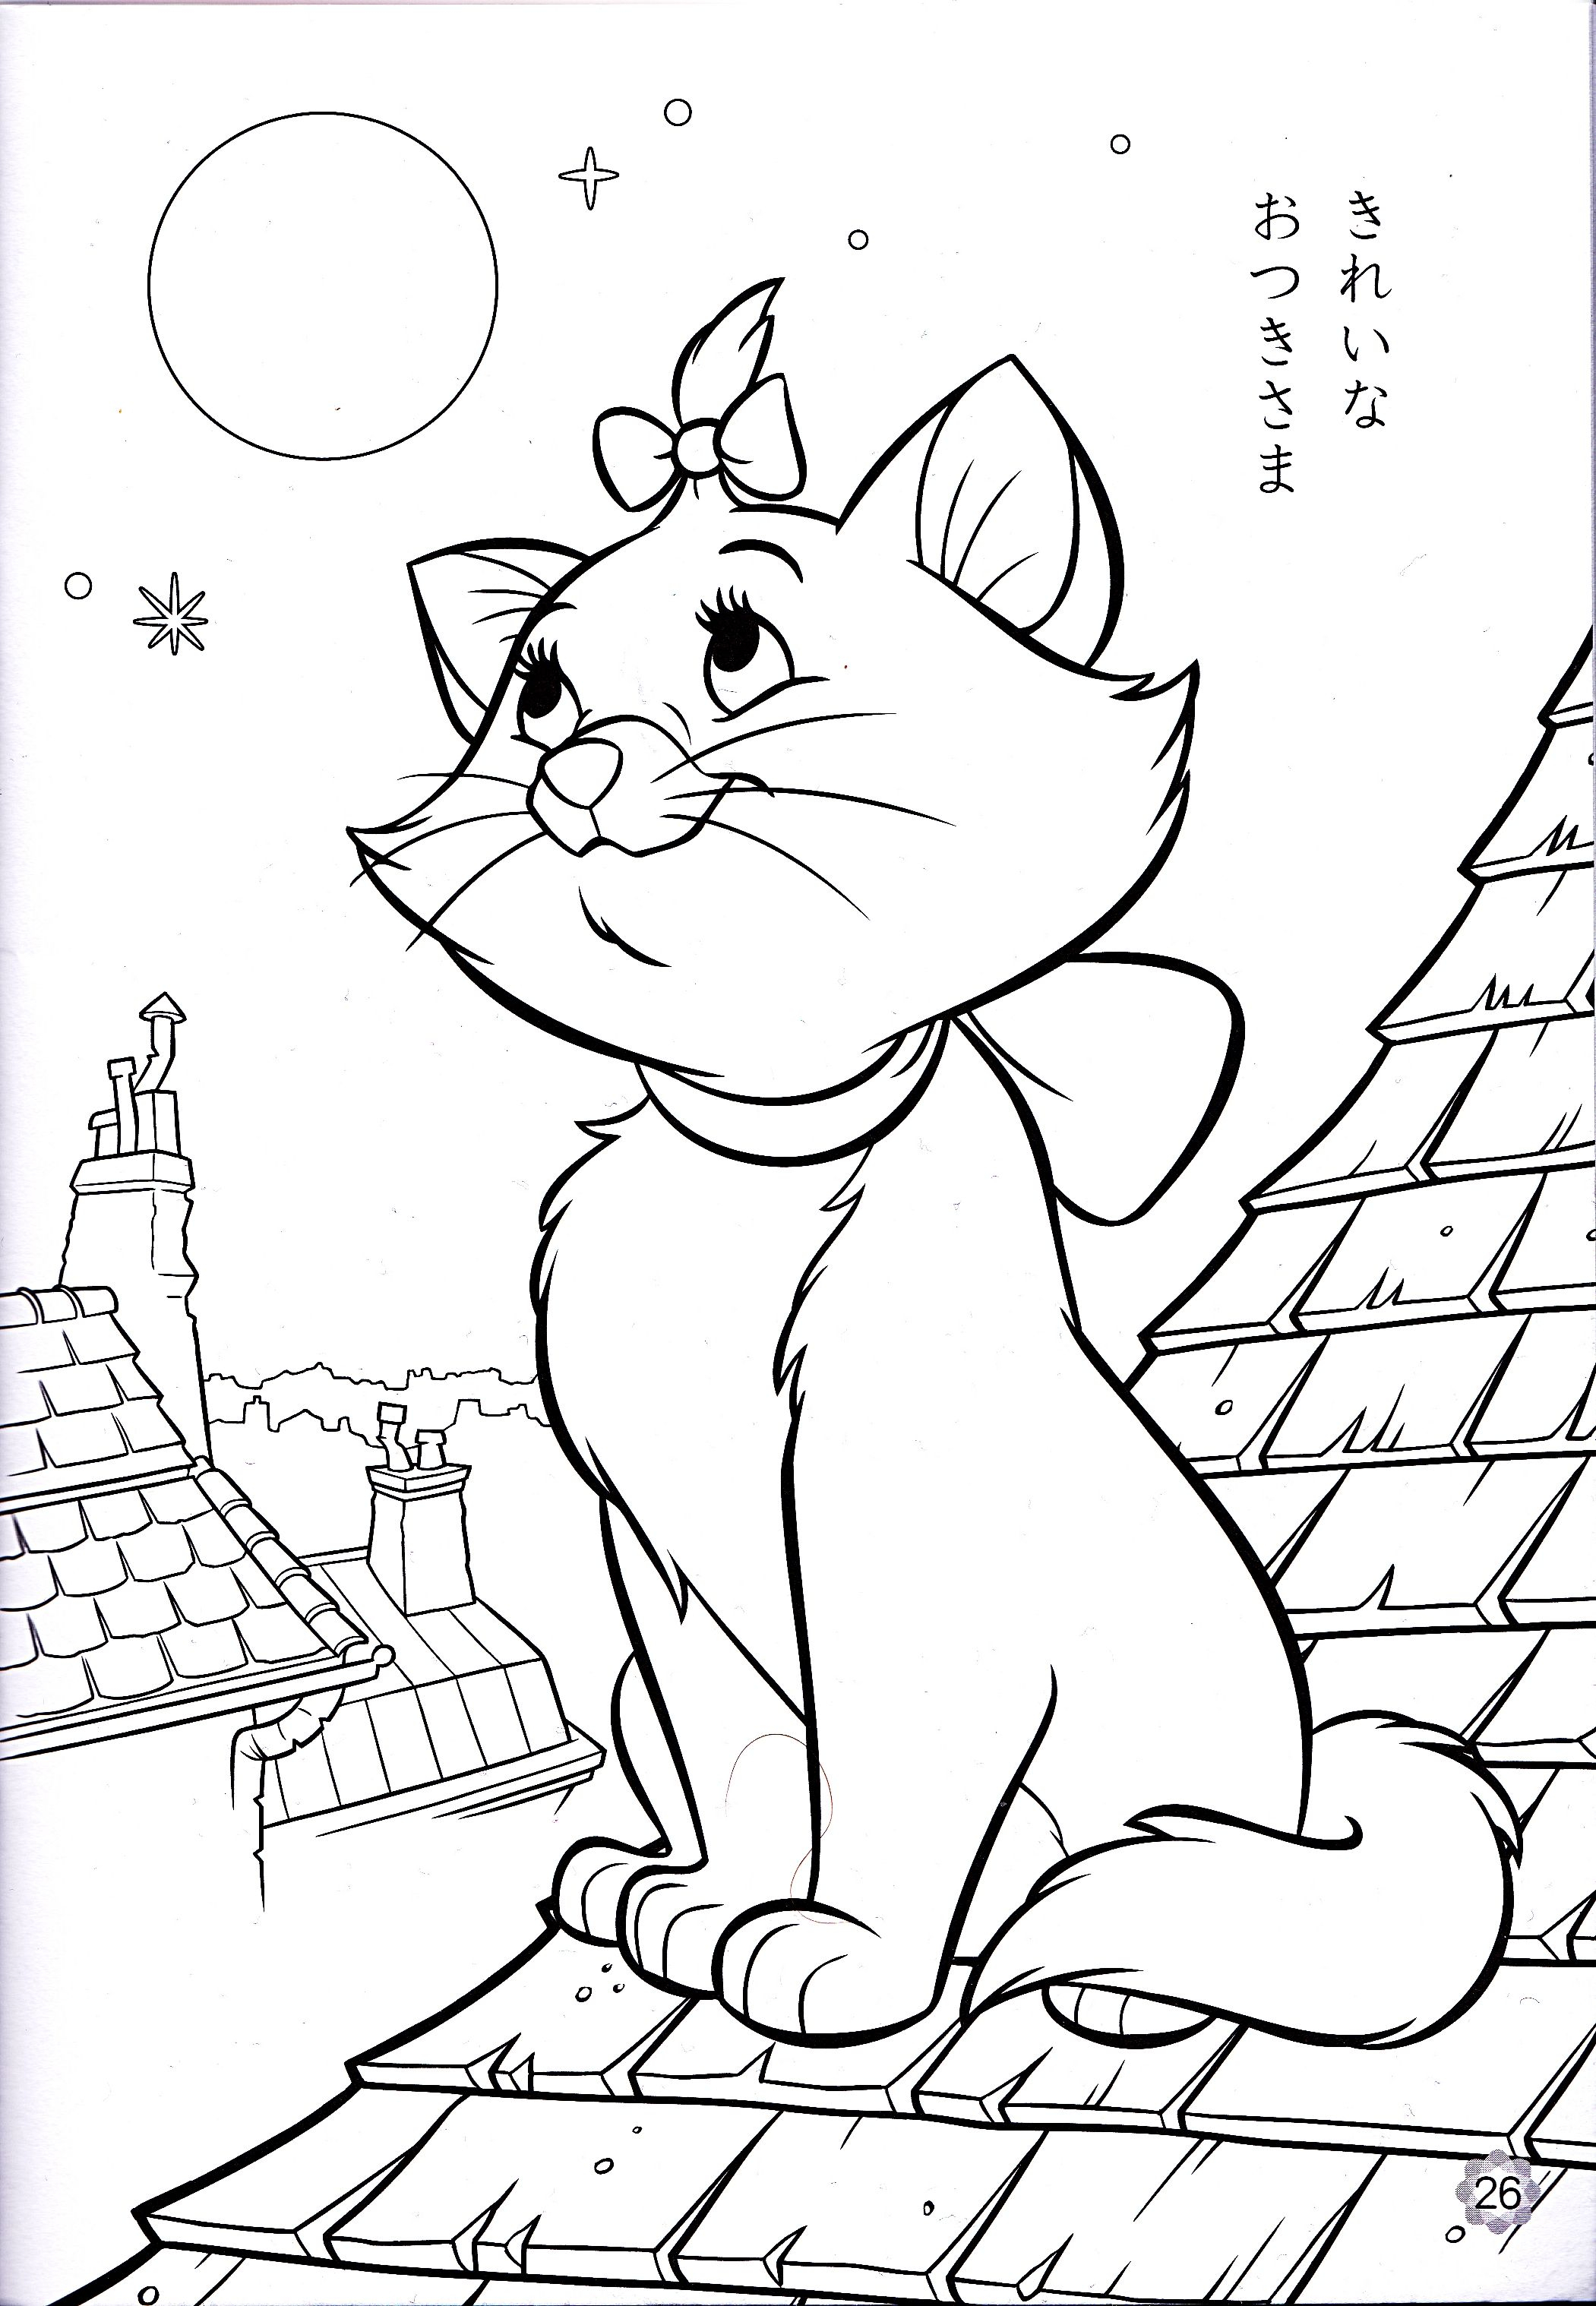 Walt Disney World Coloring Pages Gallery 20s - To print for your project